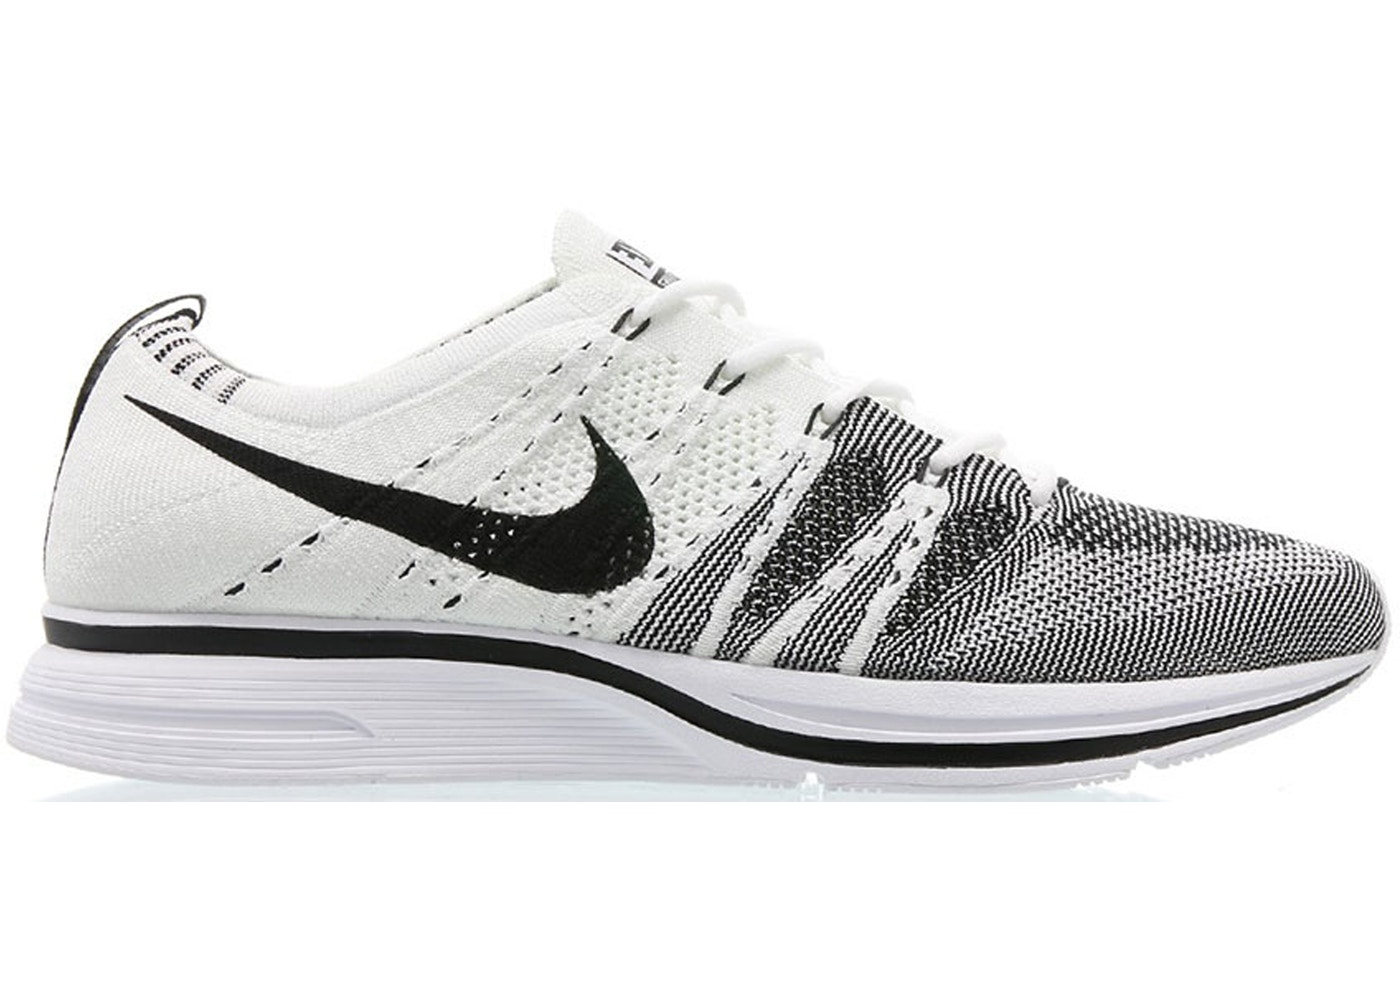 cheaper 959d2 8f917 Flyknit Trainer White Black (2017) - AH8396-100